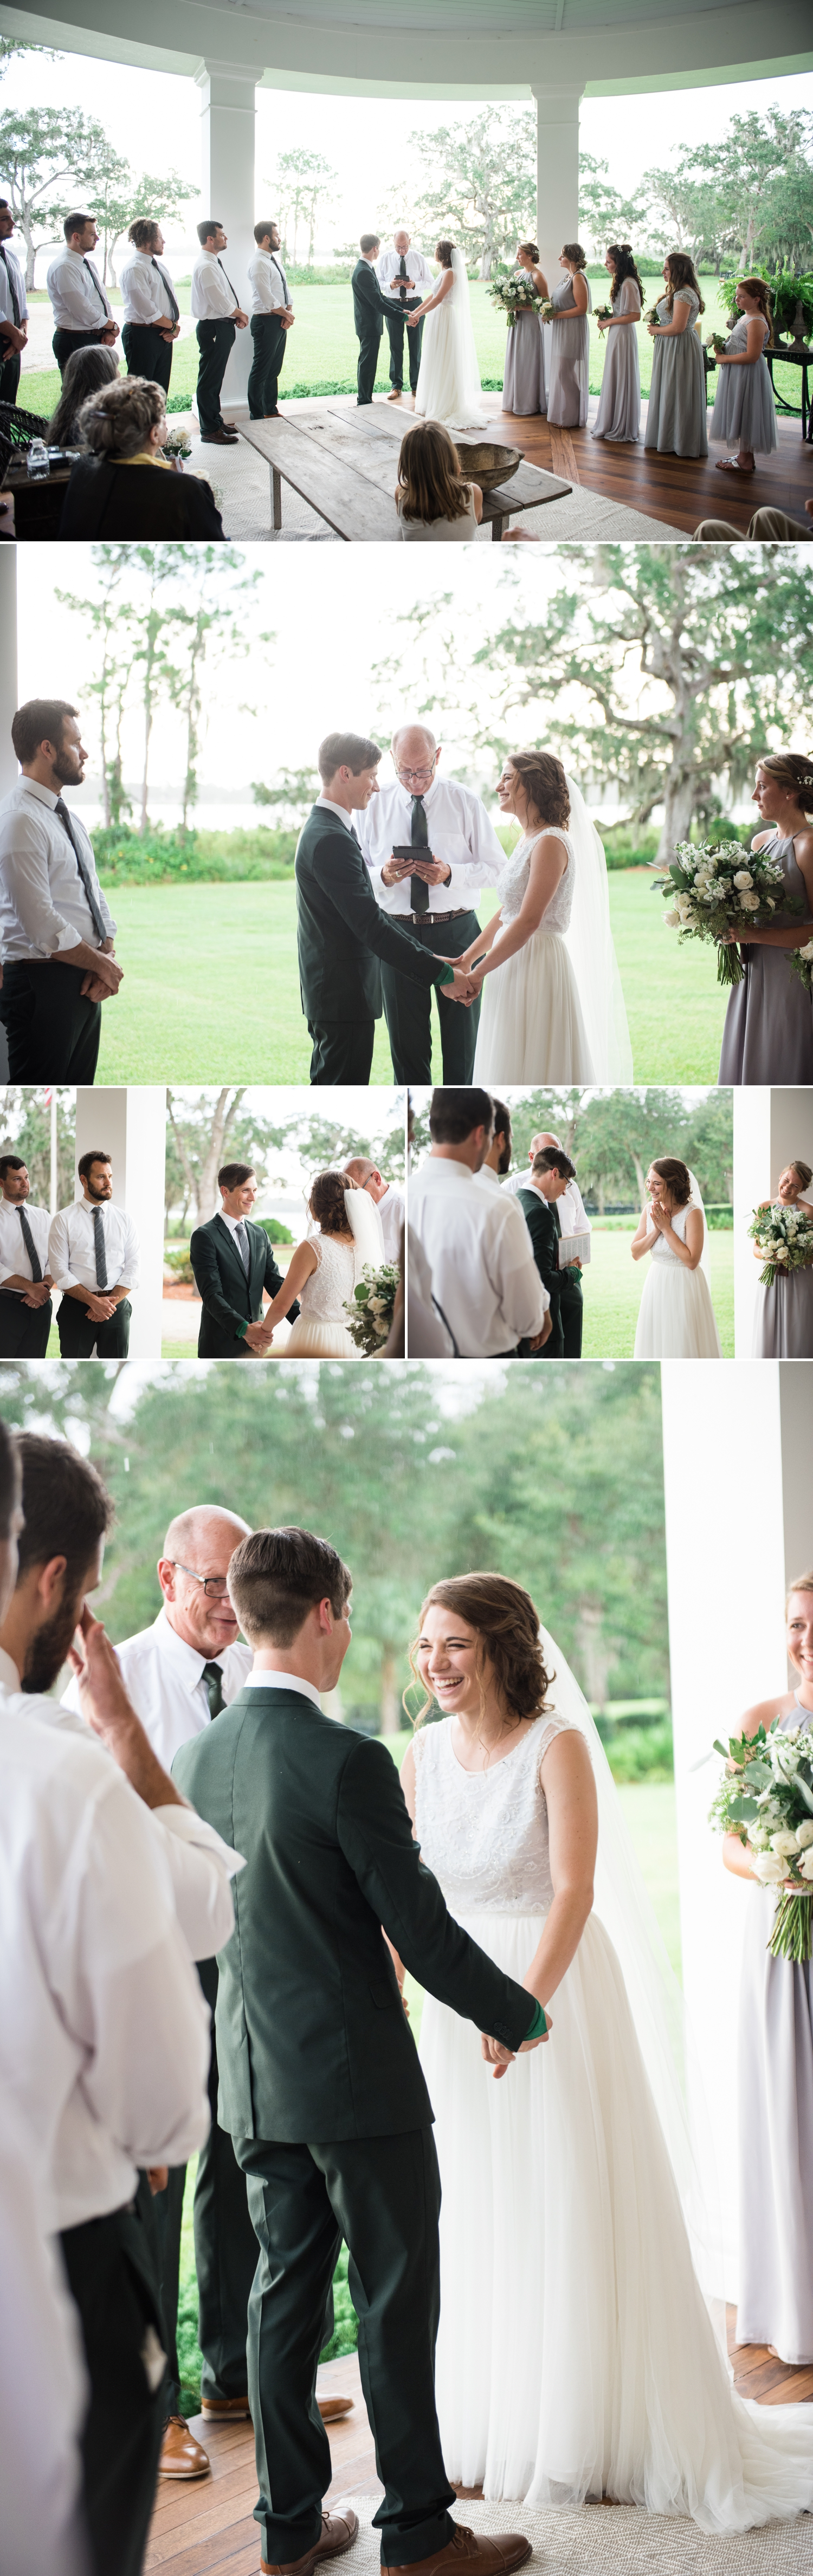 Rachel and Ryan Wedding 2 6.jpg